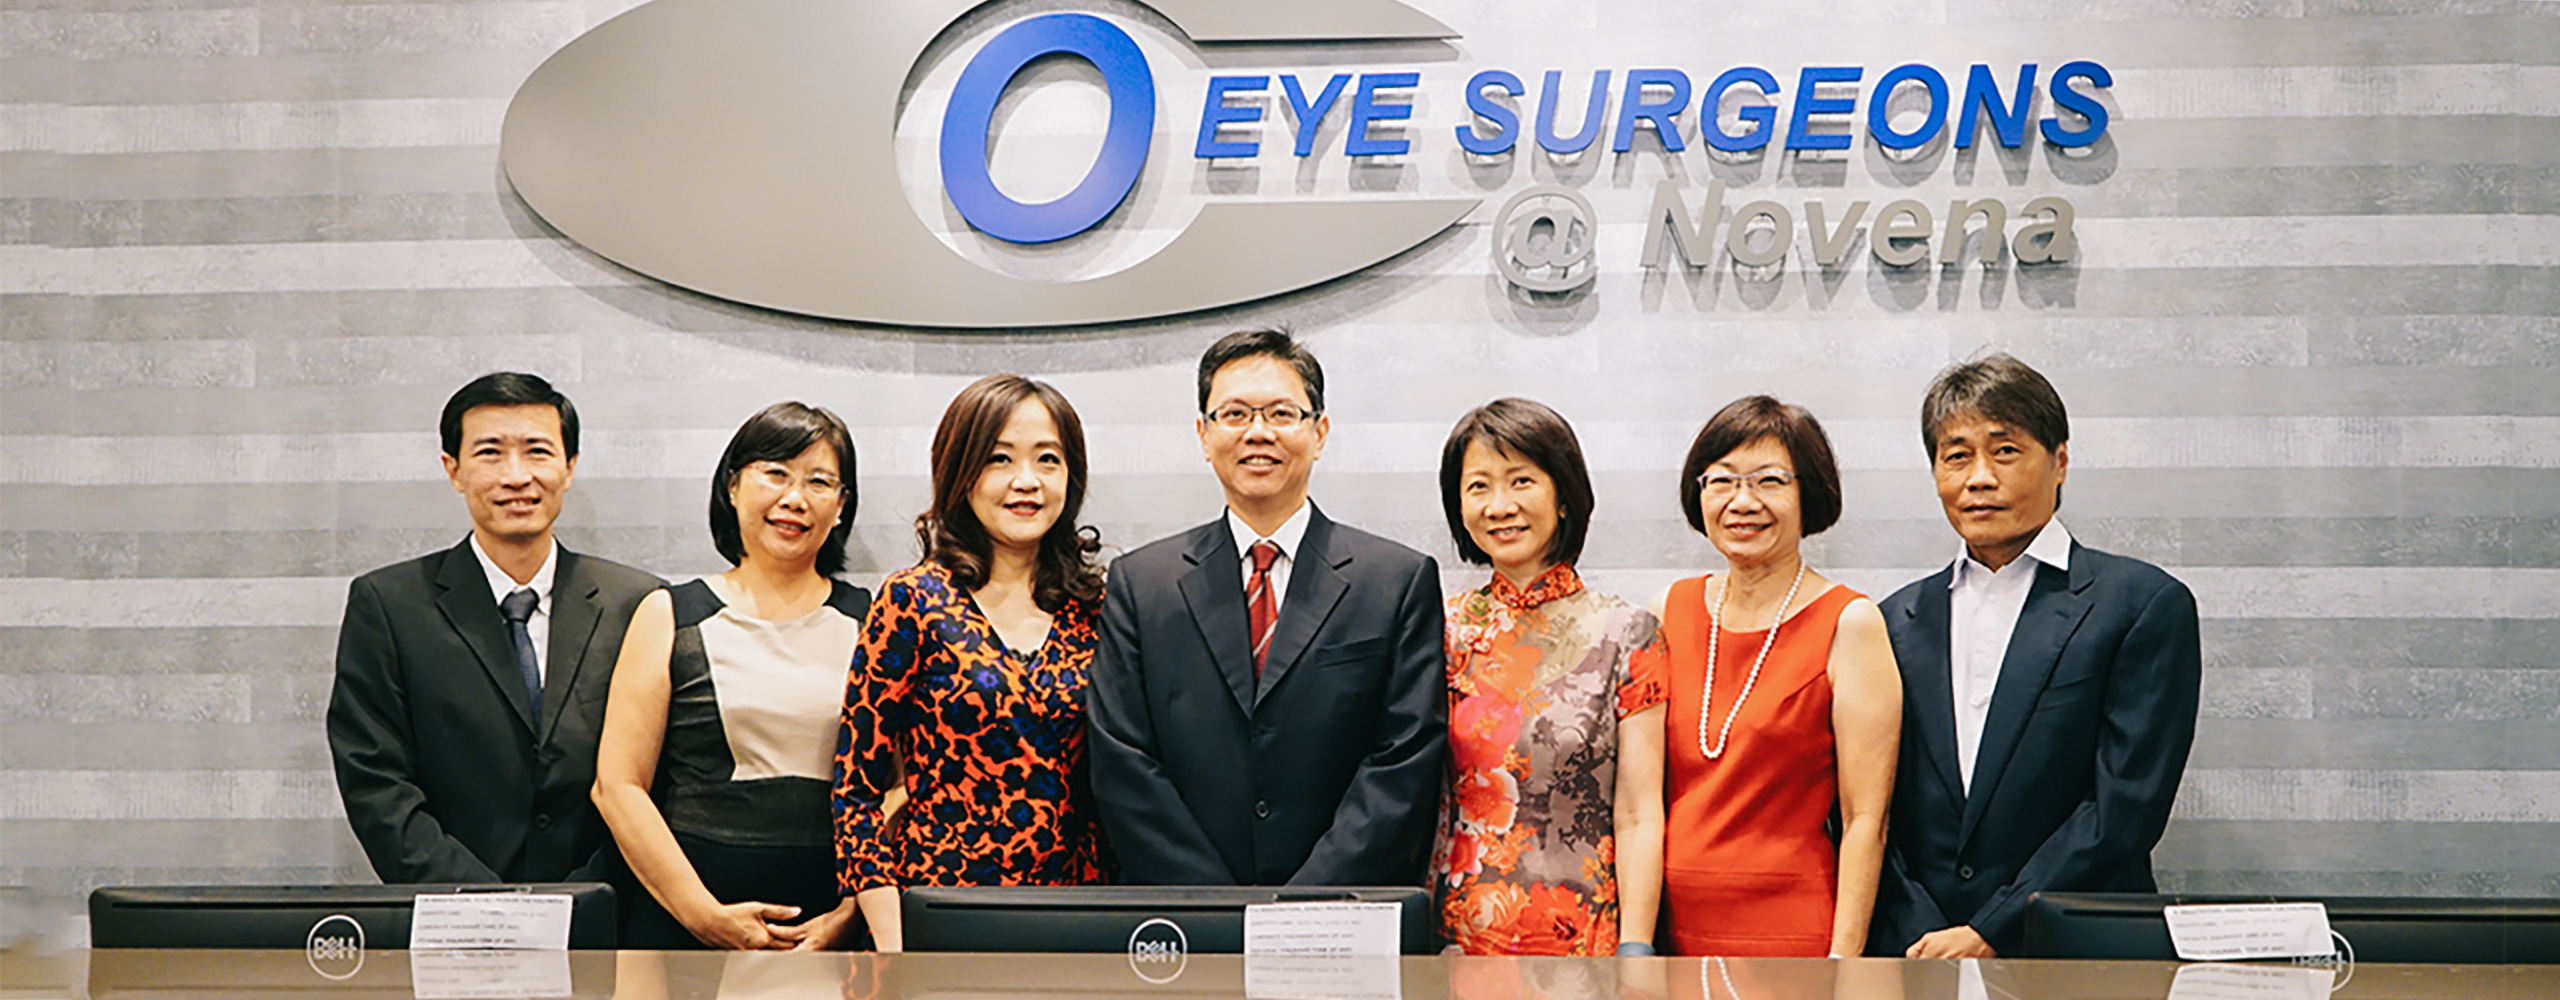 eye-surgeons-specialists-doctors-1